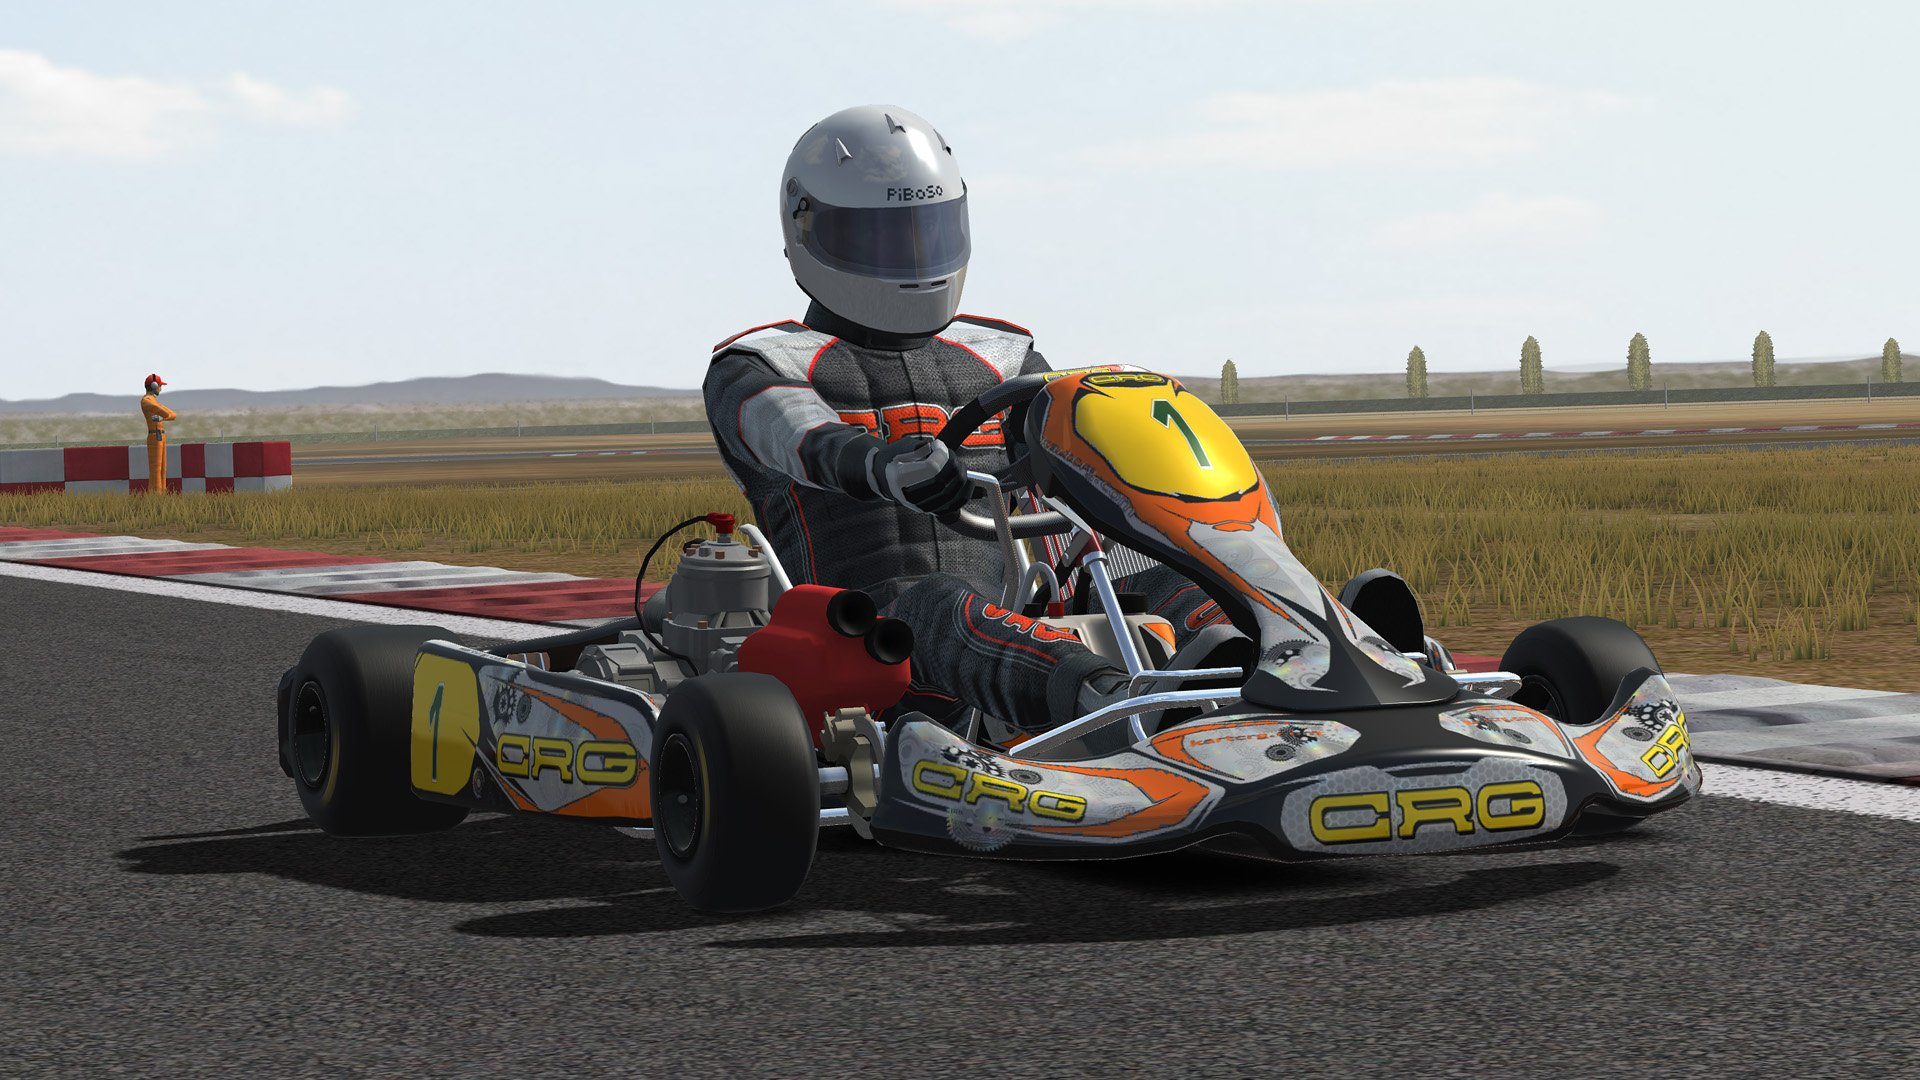 Kart Racing Pro kart with driver from front